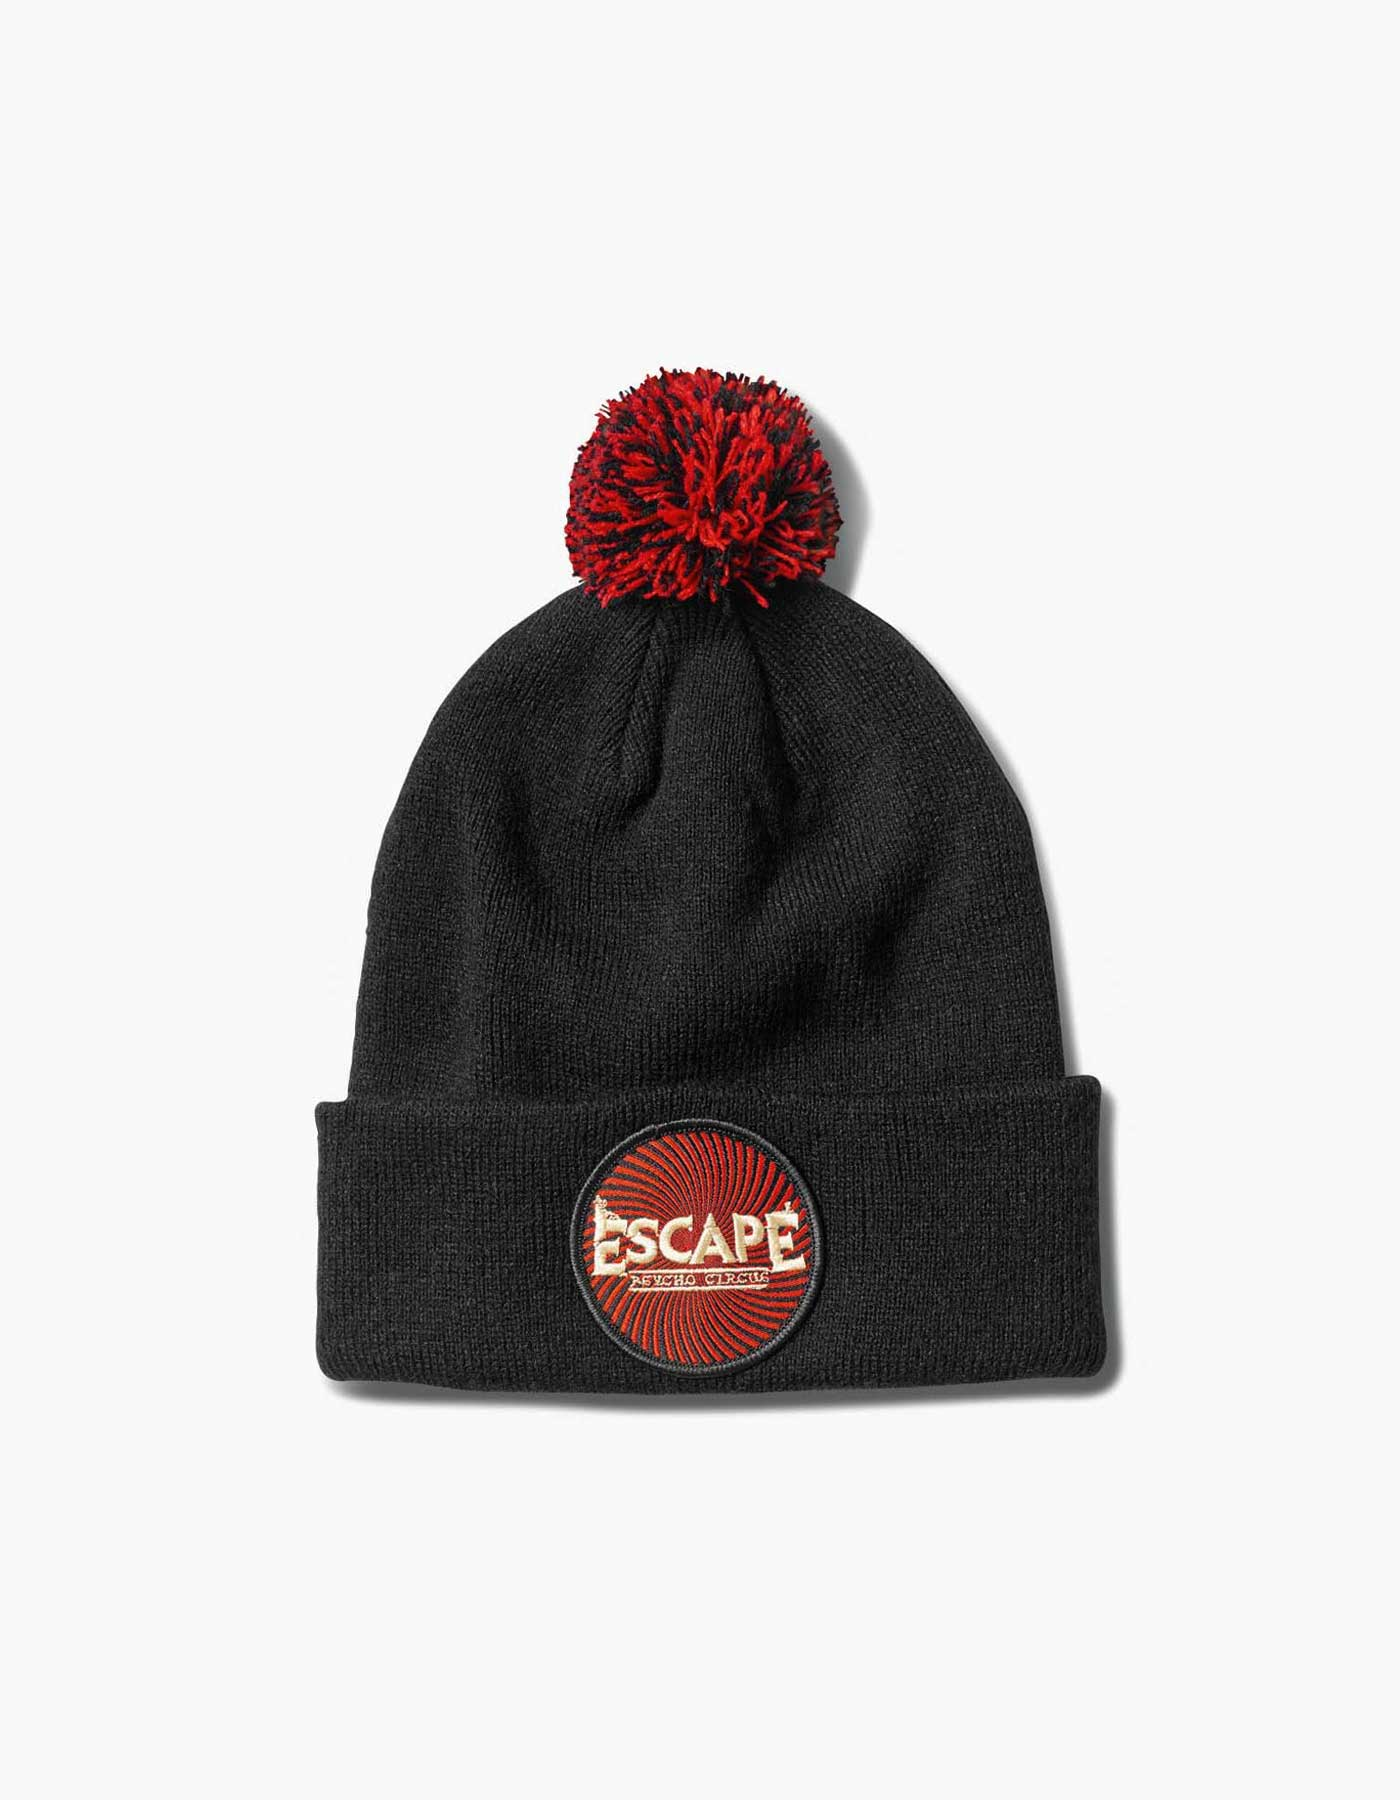 Escape Patch Beanie